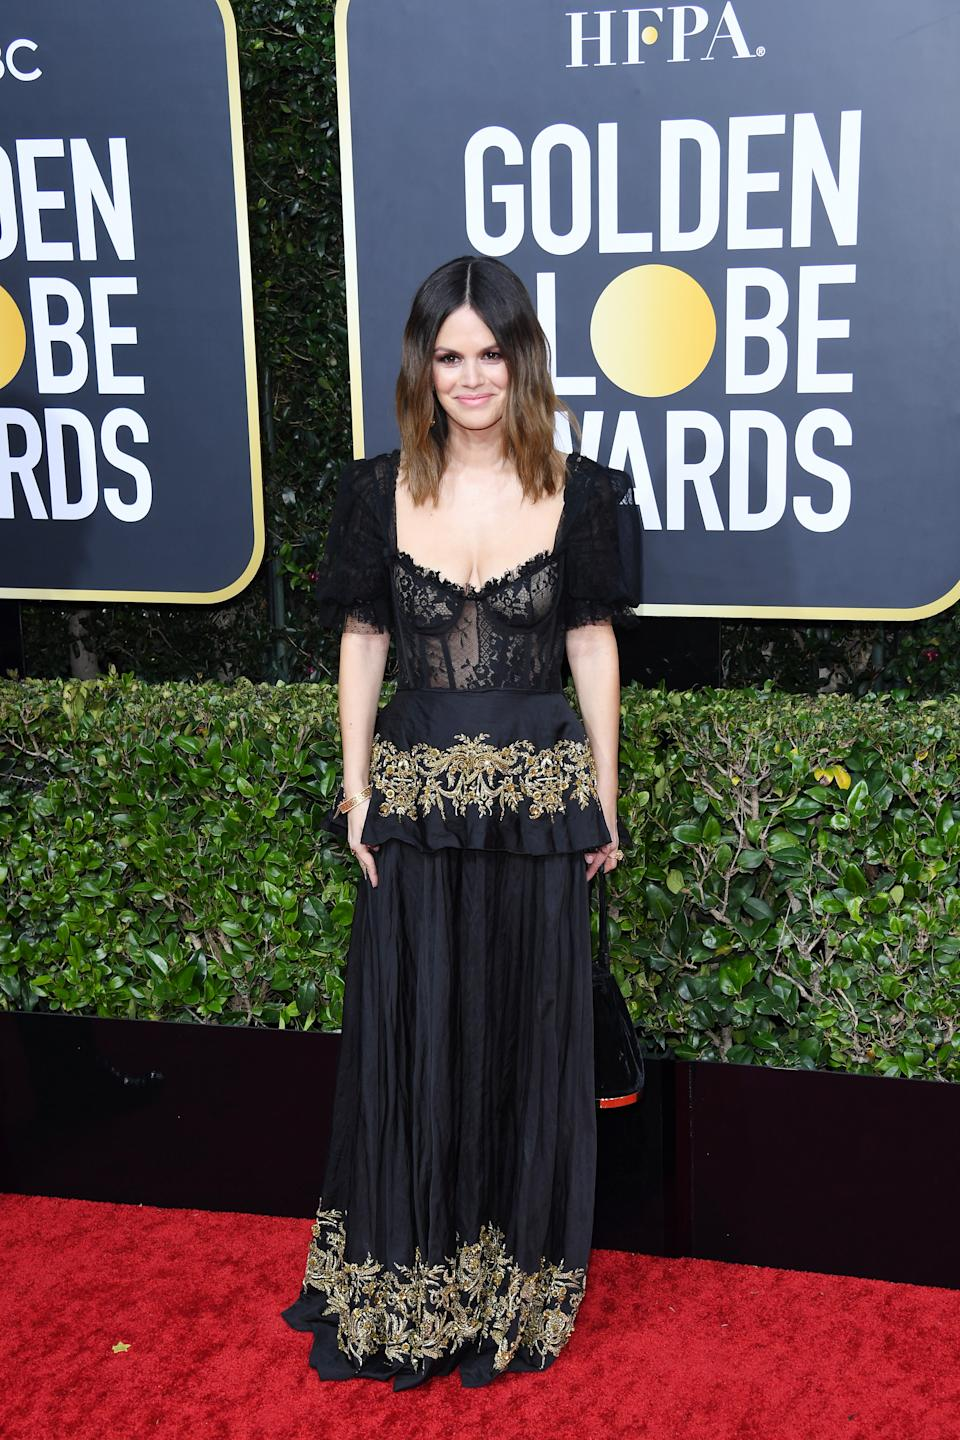 BEVERLY HILLS, CALIFORNIA - JANUARY 05: Rachel Bilson attends the 77th Annual Golden Globe Awards at The Beverly Hilton Hotel on January 05, 2020 in Beverly Hills, California. (Photo by Daniele Venturelli/WireImage)